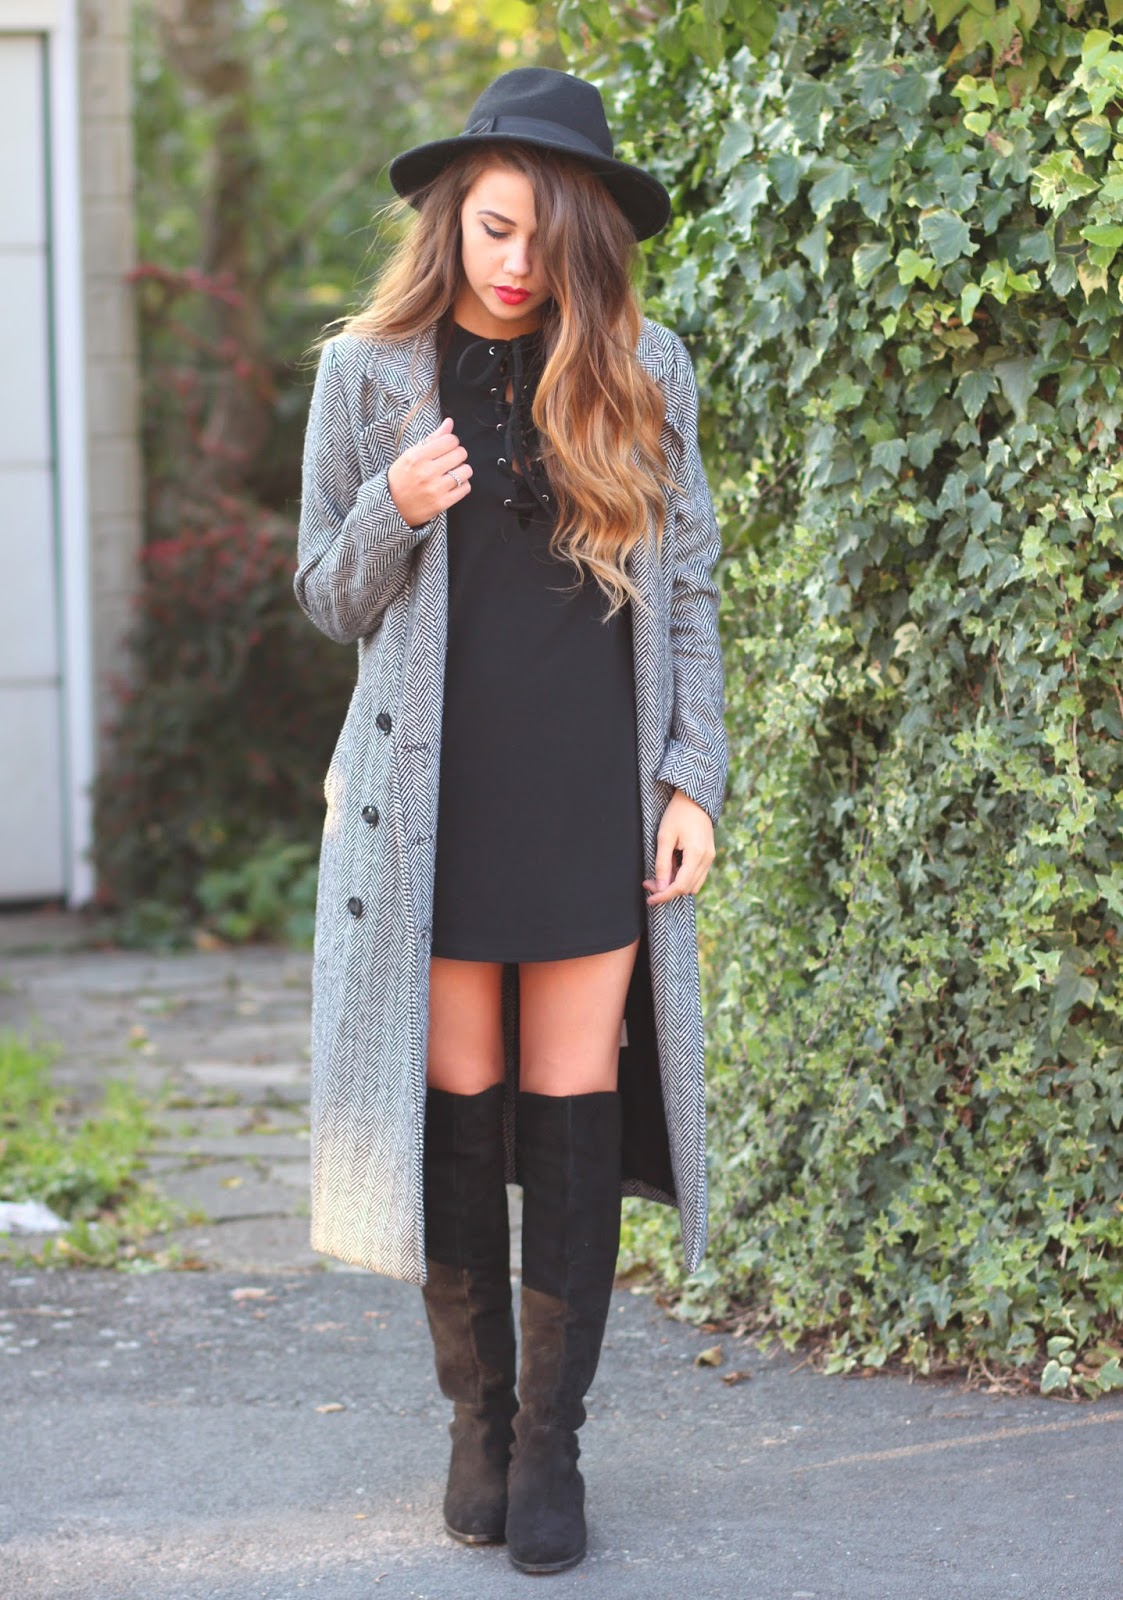 lace-up-dress-misspap-knee-high-boots-fashion-blogger